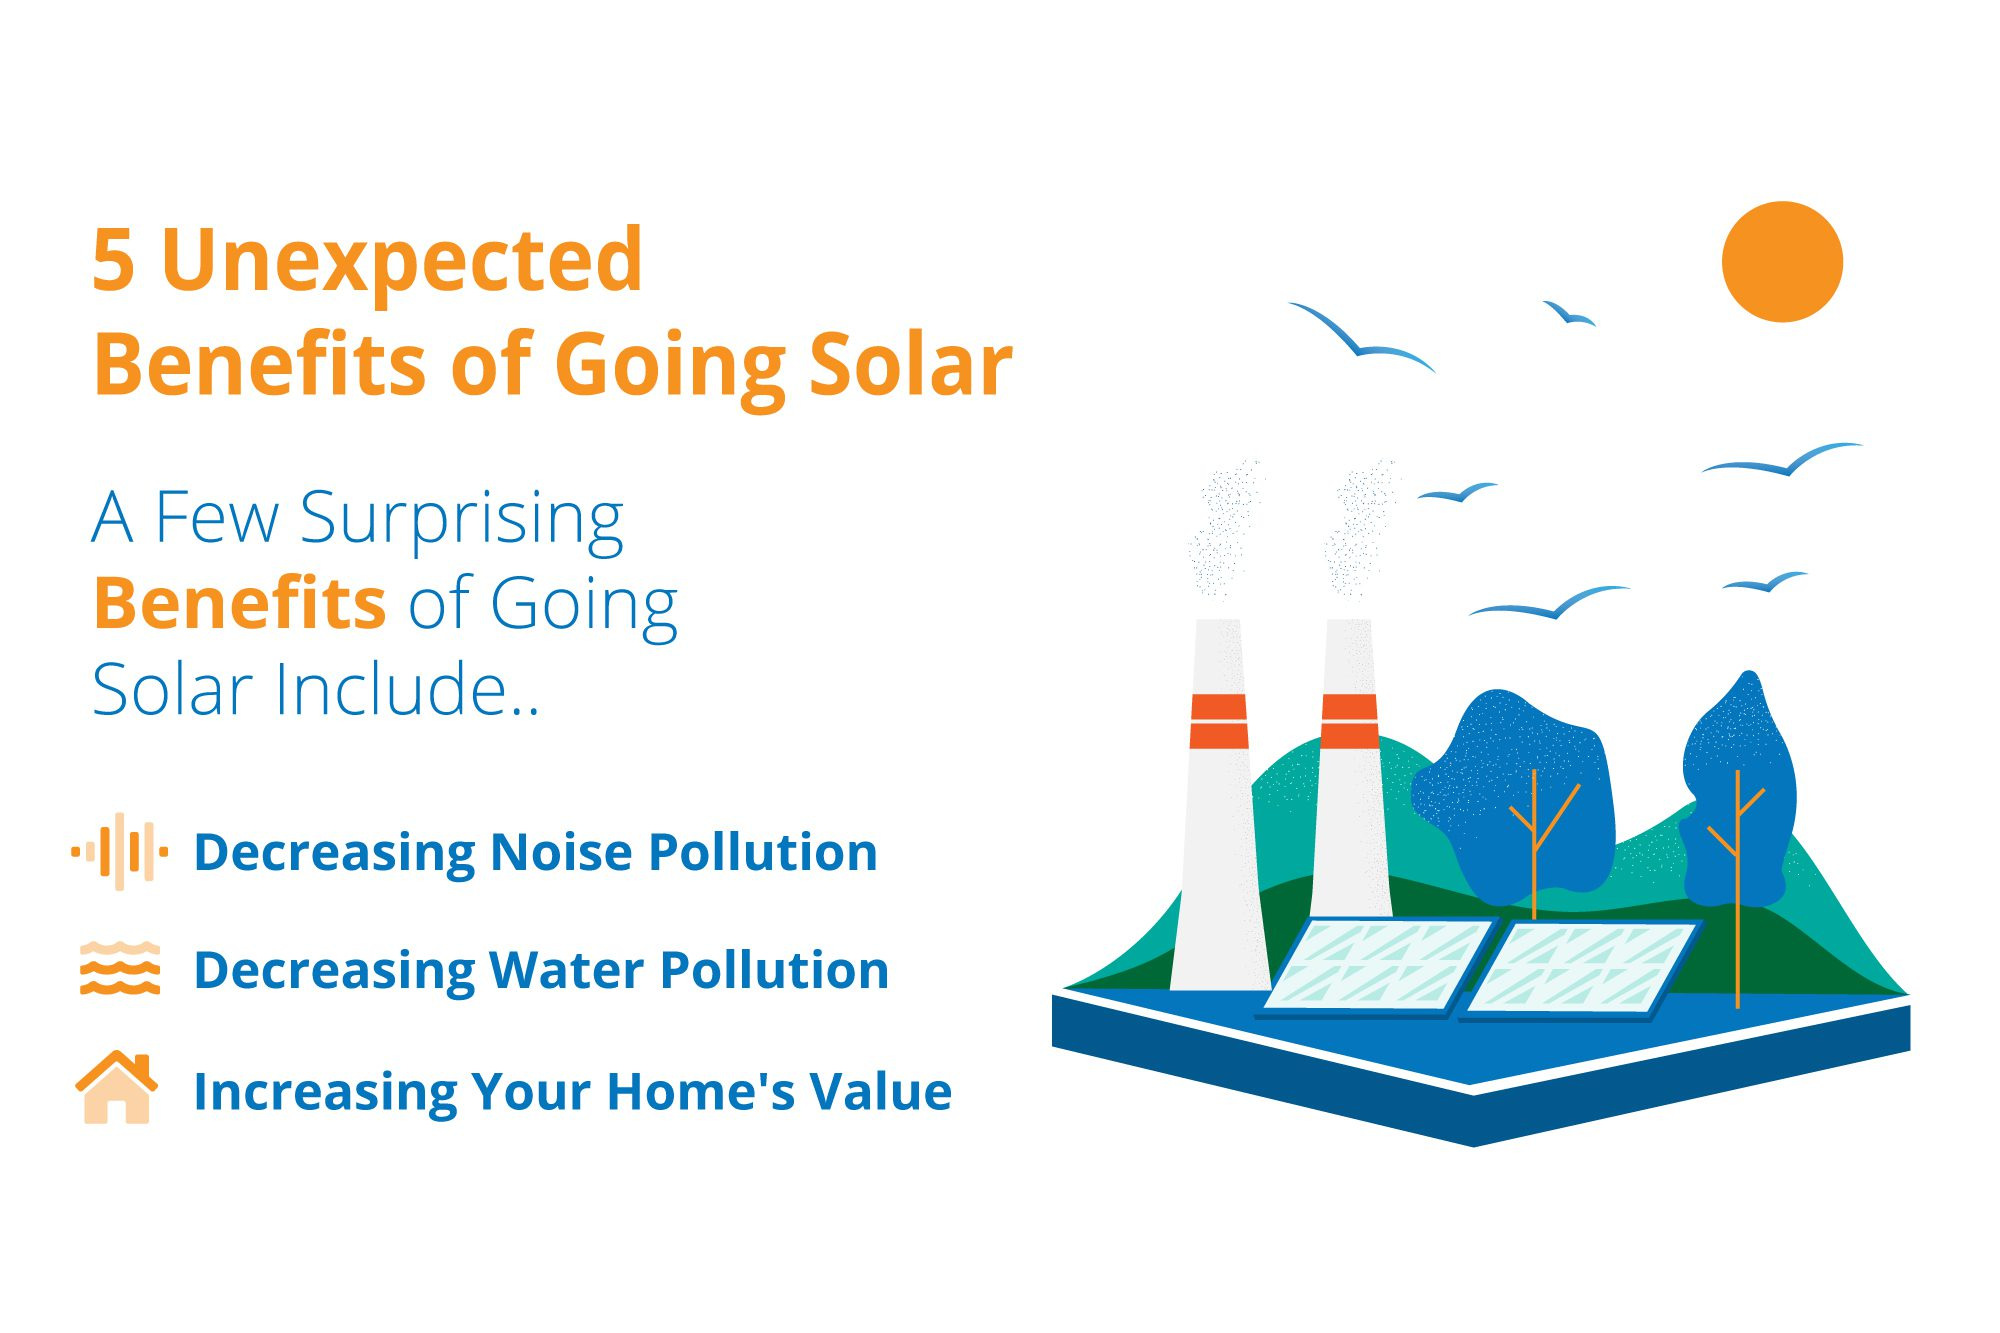 5 Unexpected Benefits of Going Solar